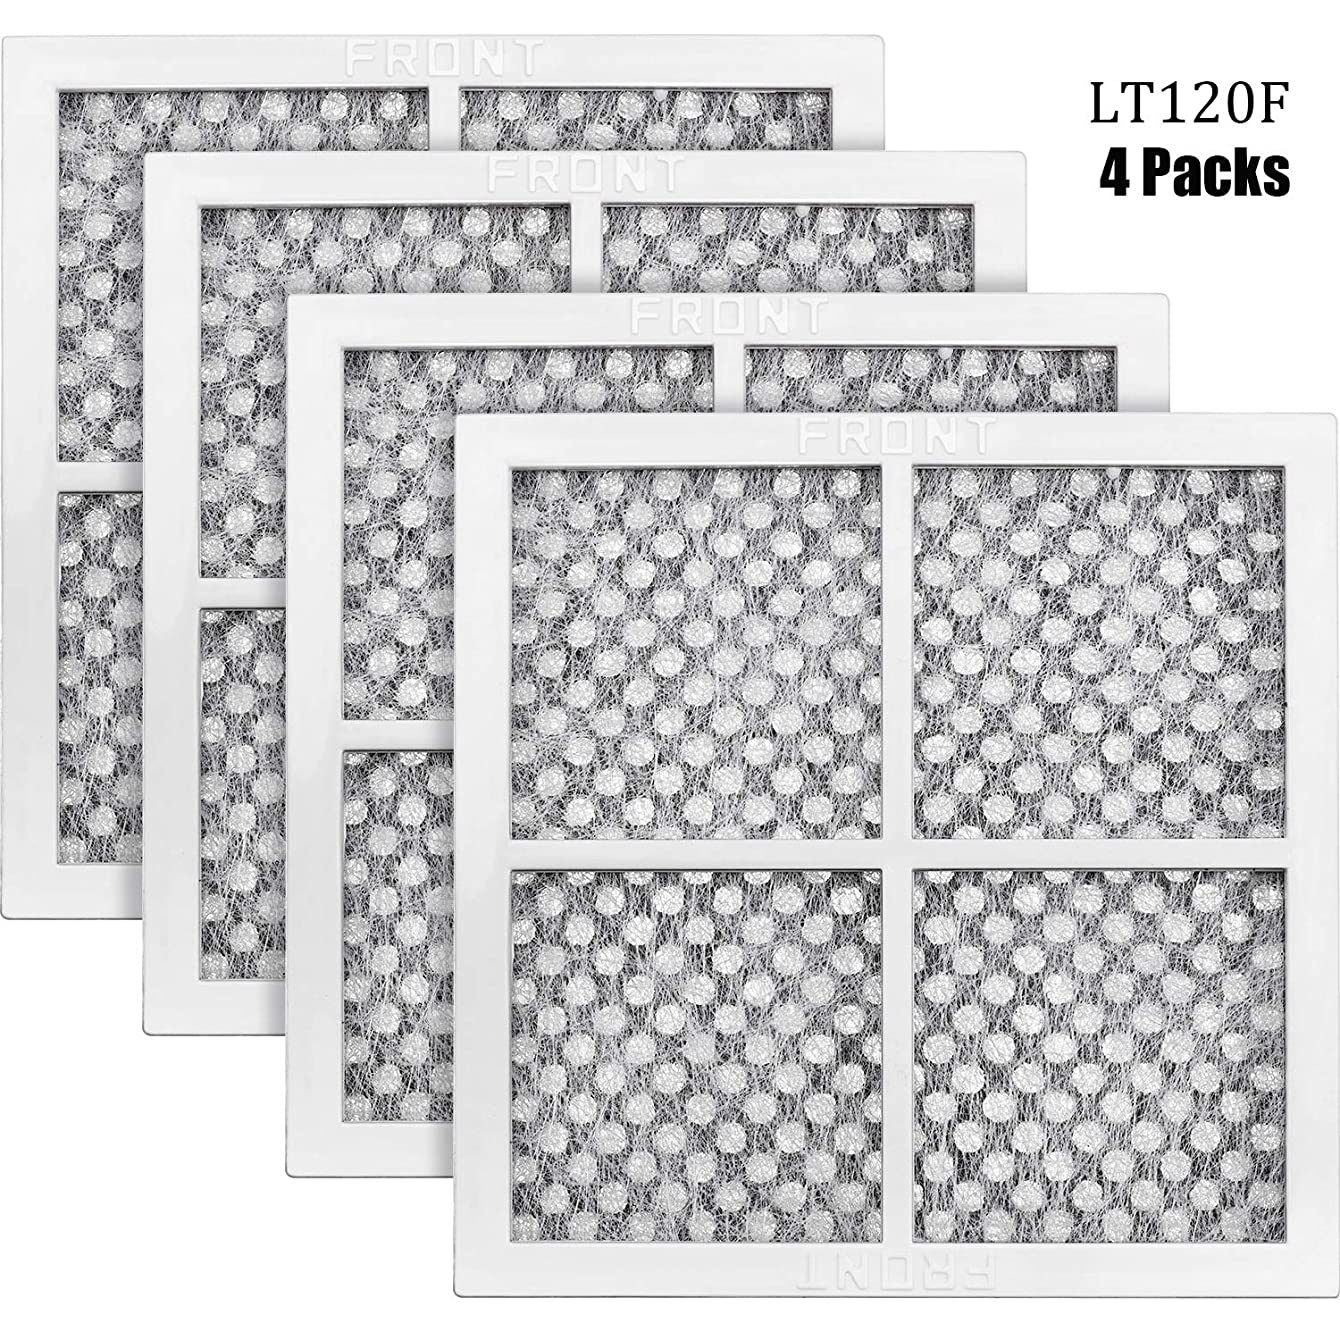 Hotop 4 Packs LT120F Refrigerator Air Filter Compatible with LG and Kenmore Refrigerator Replace for LG ADQ73214404, ADQ73214402 and Kenmore 469918